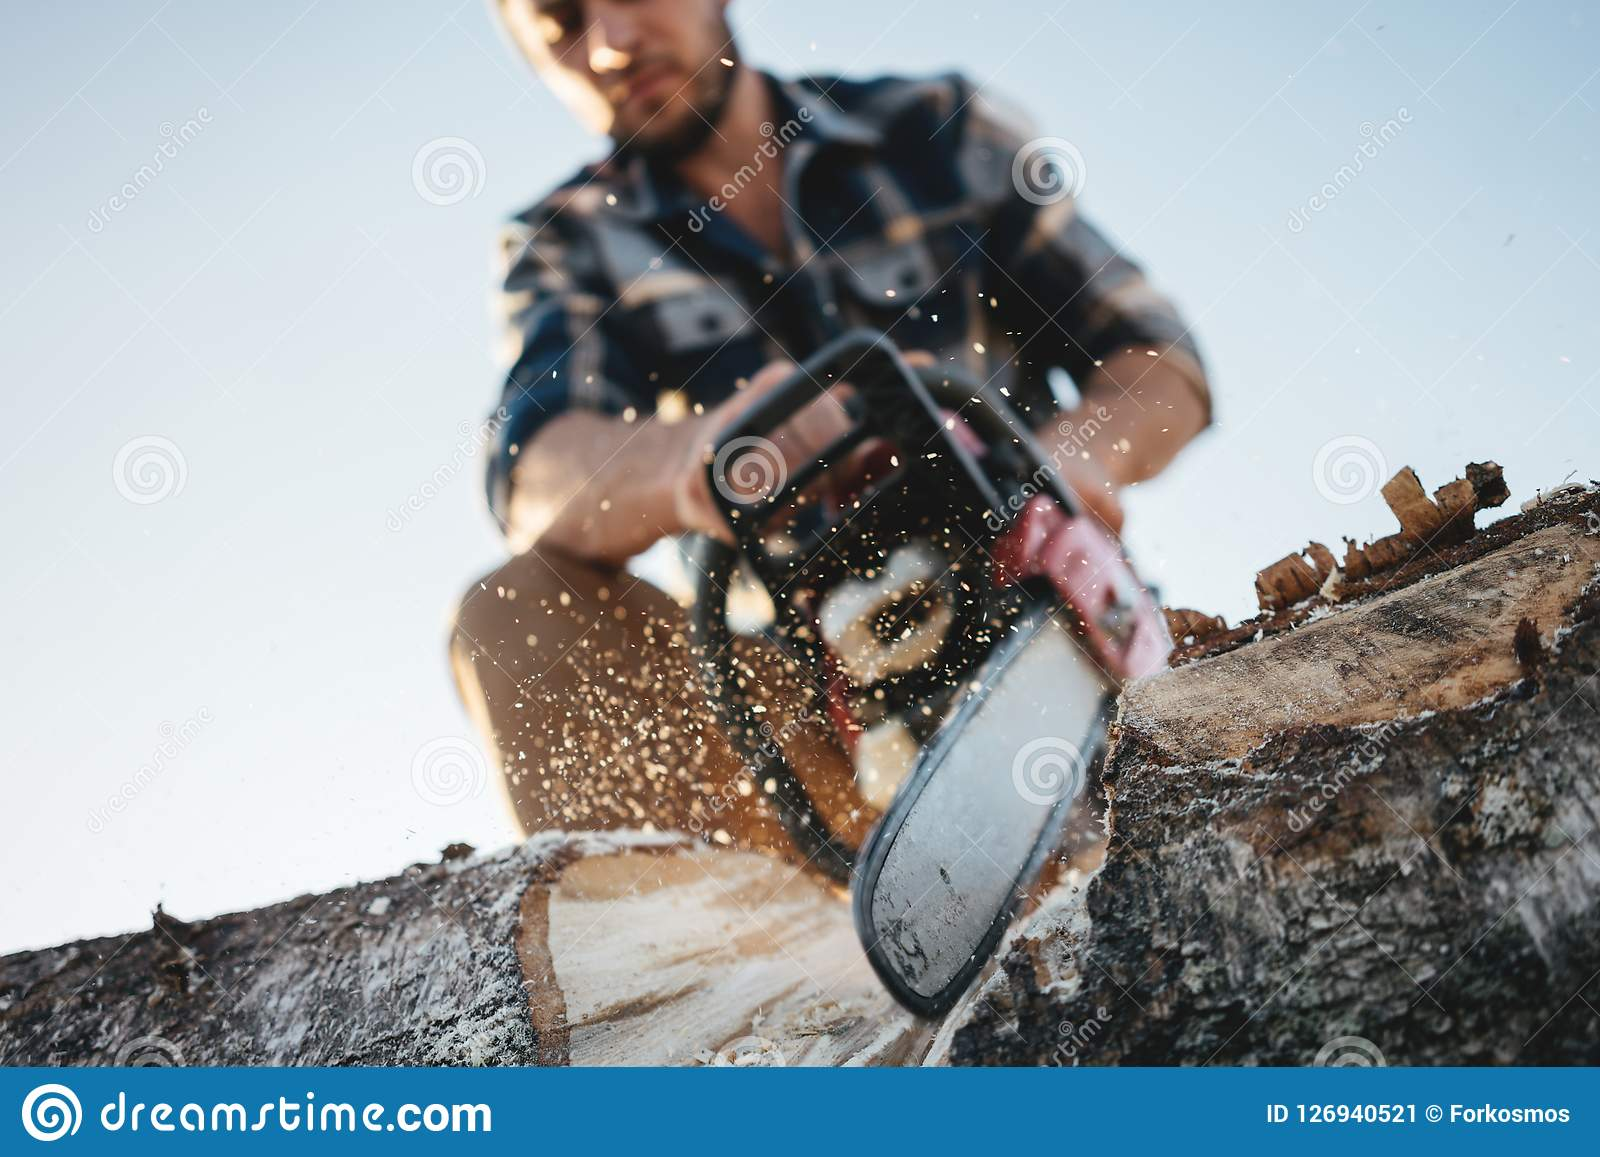 Close up view on bearded strong lumberjack wearing plaid shirt sawing tree with chainsaw for work on sawmill